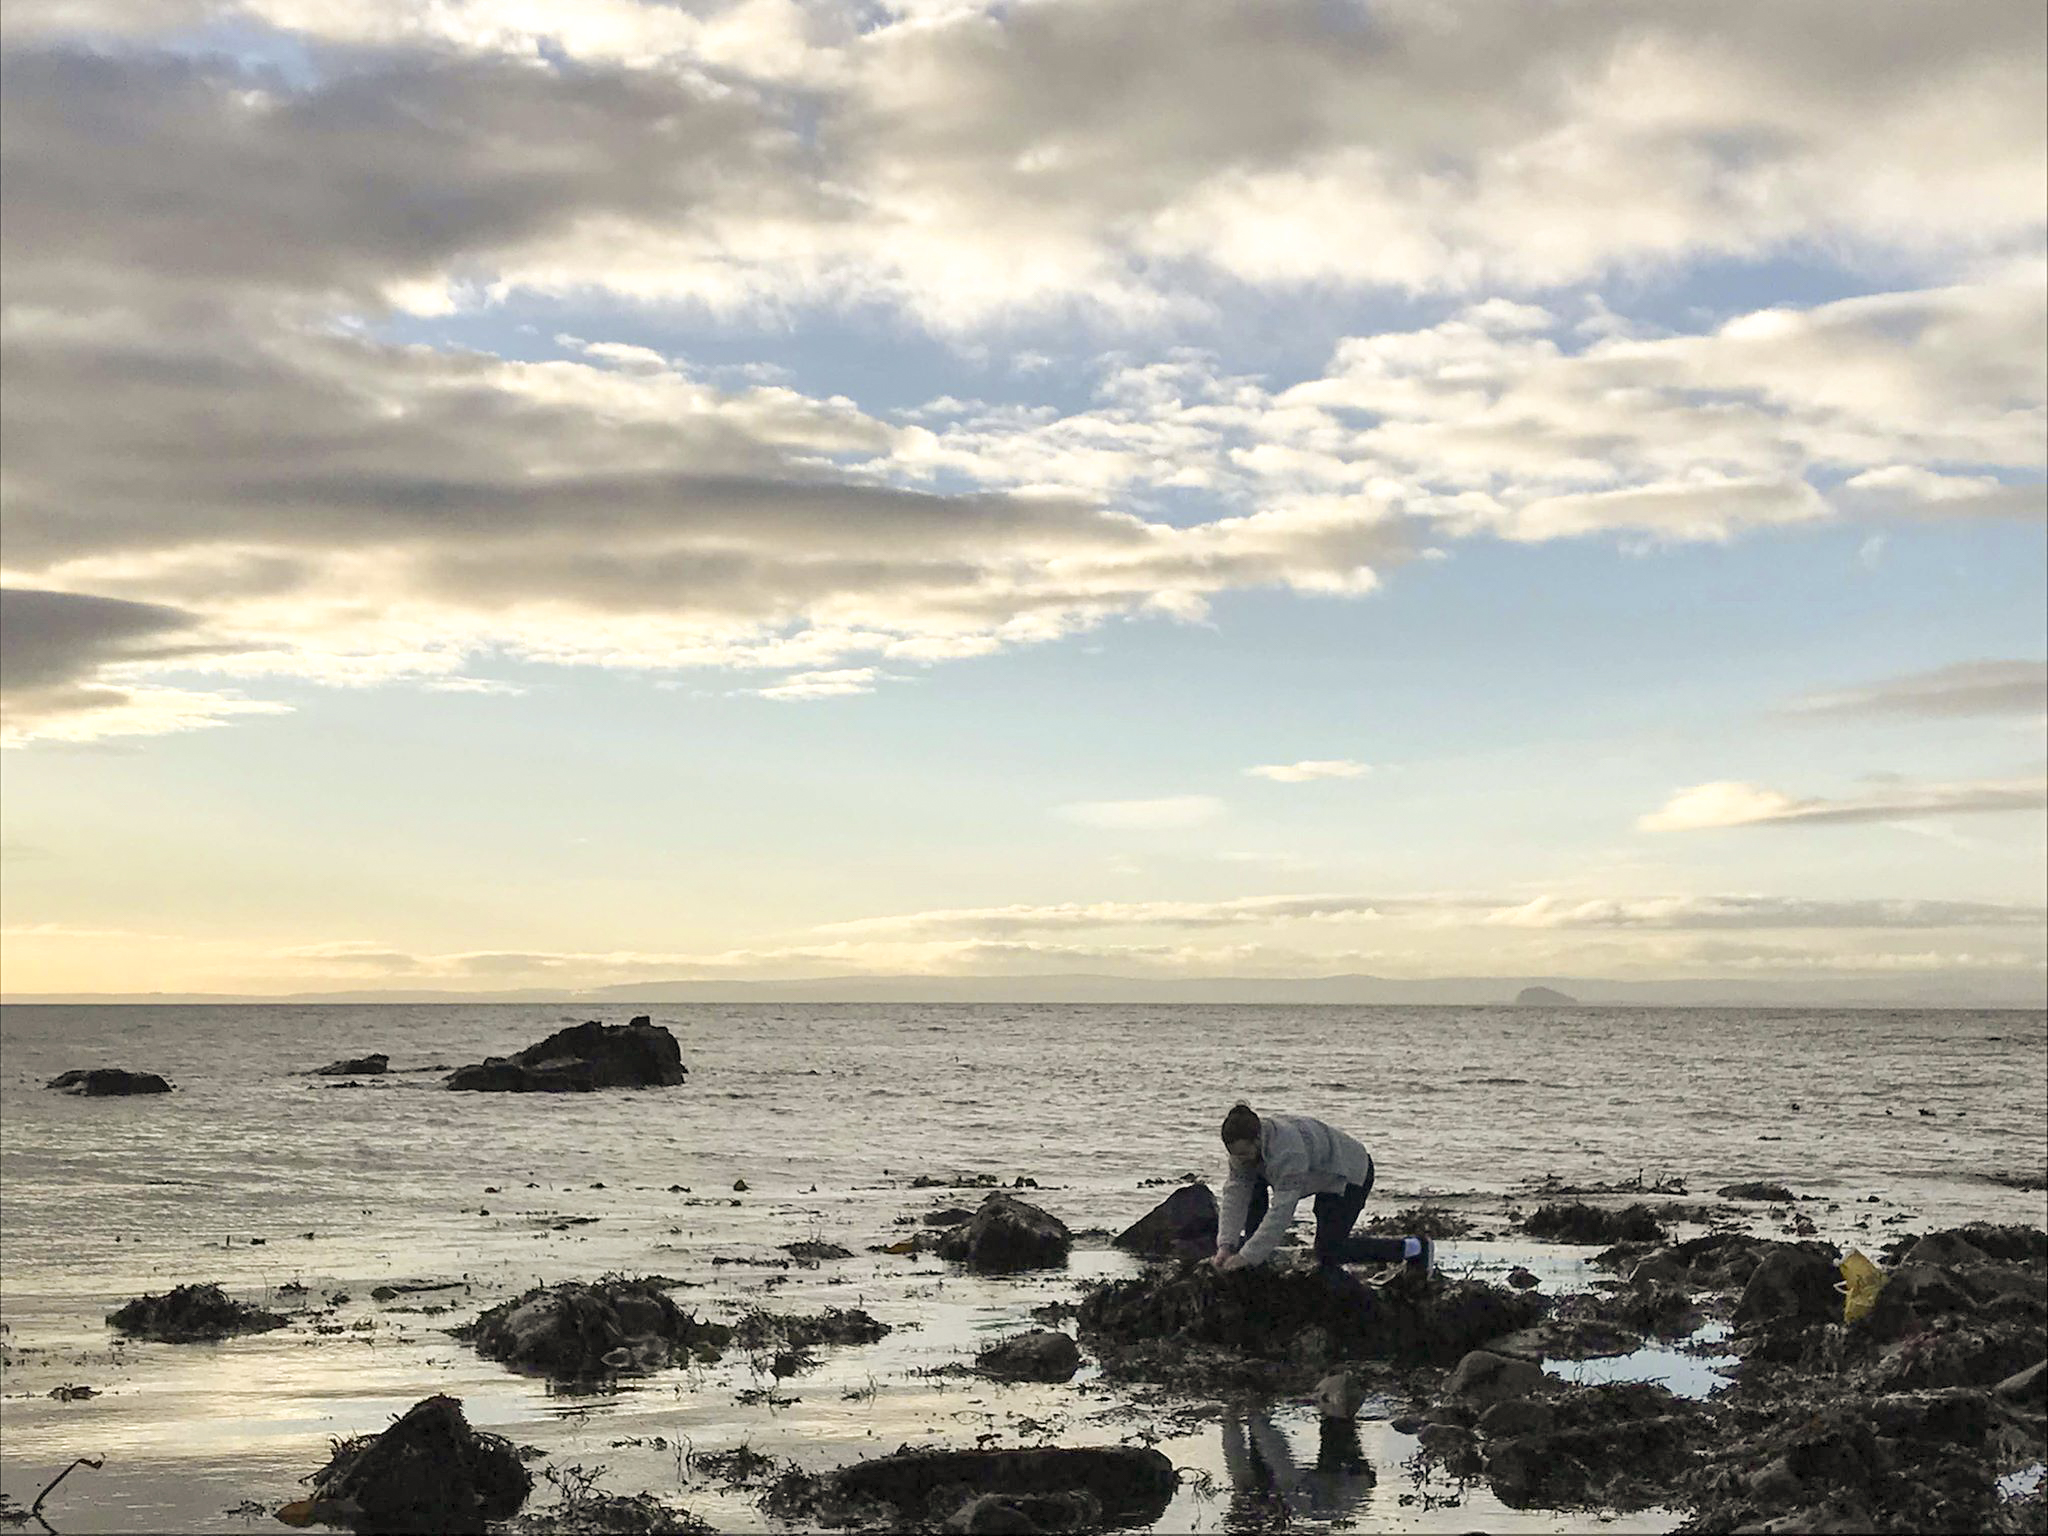 Michael Anderson collecting the kelp